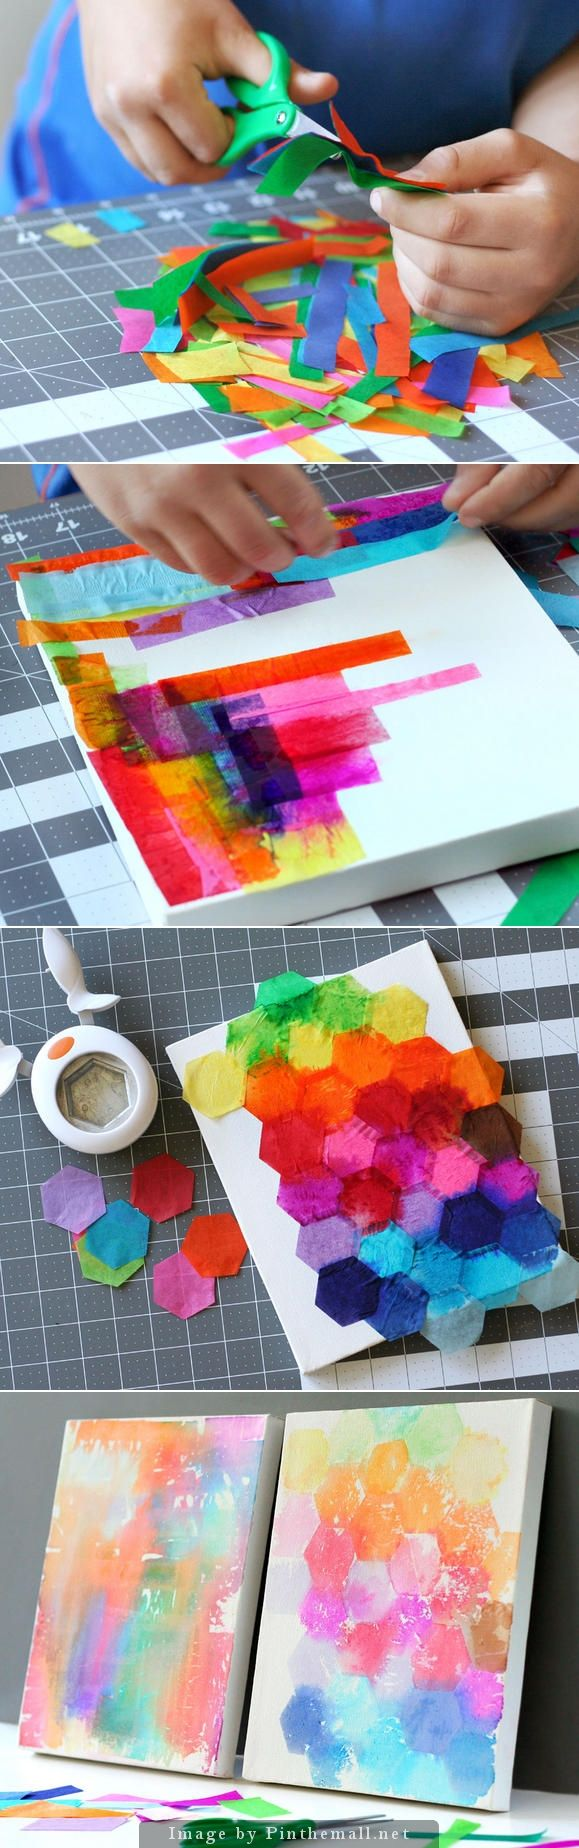 "Bleeding Tissue Paper Art - ""Painting"""